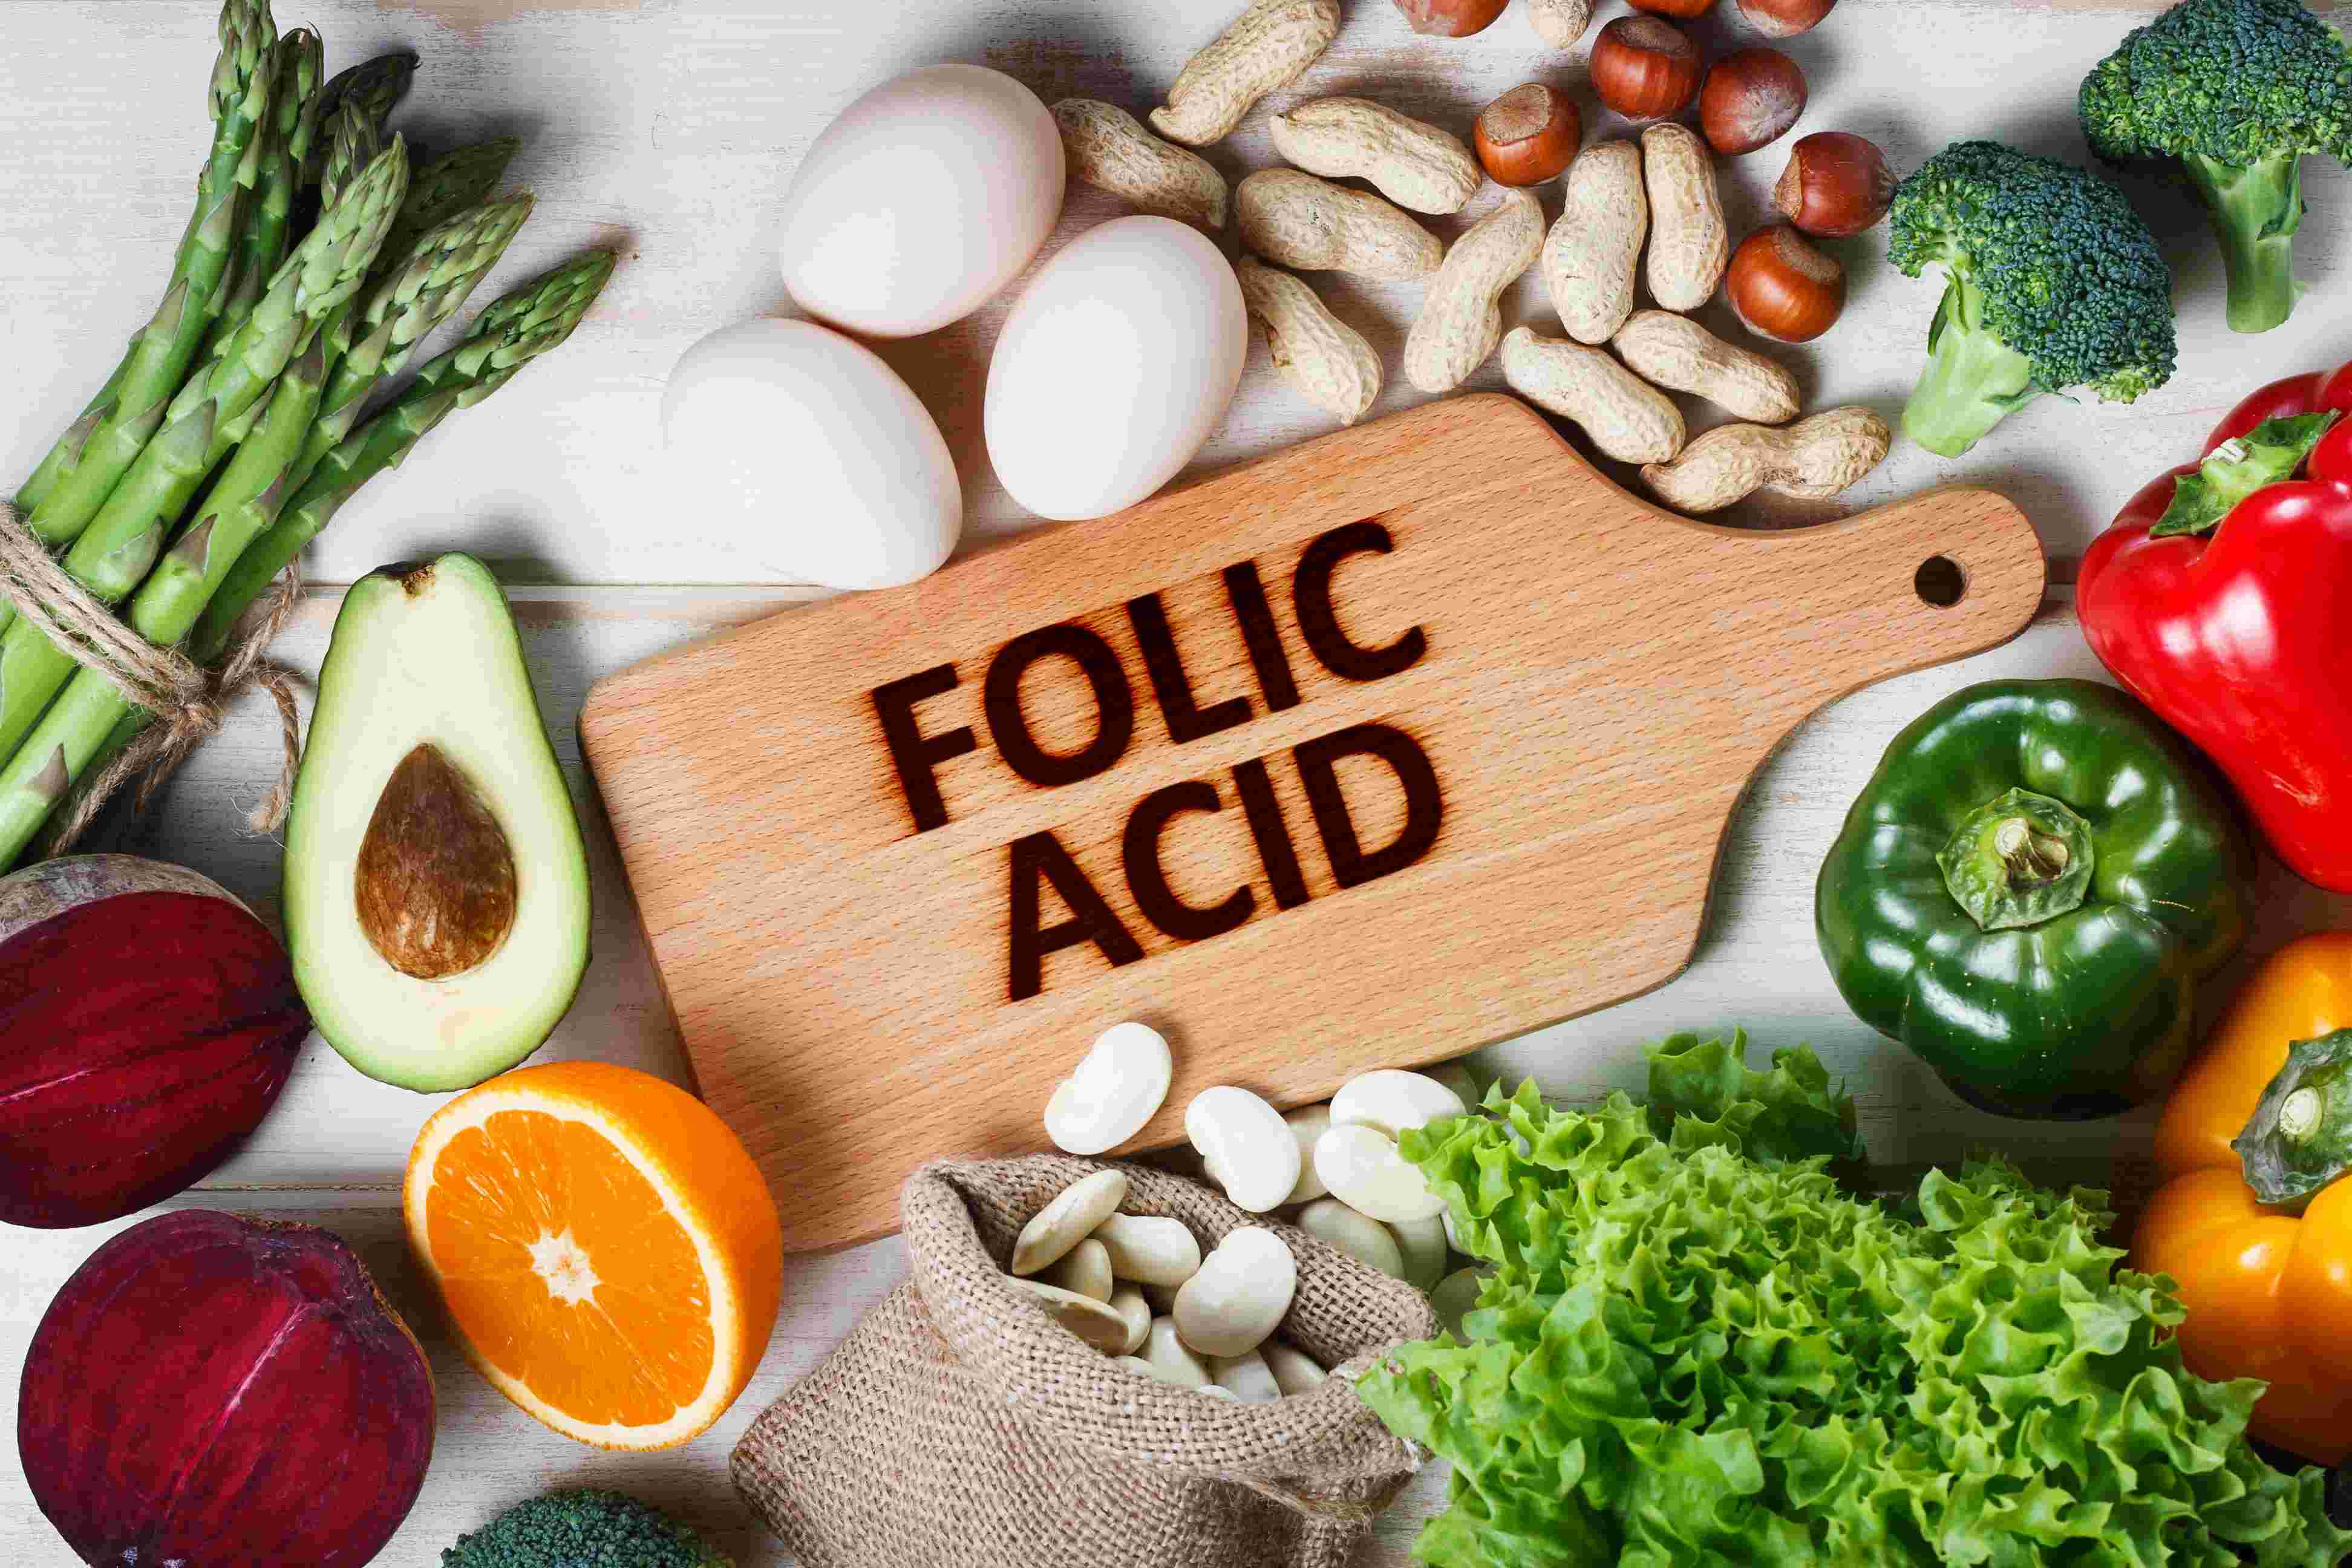 folic acid before and during pregnancy